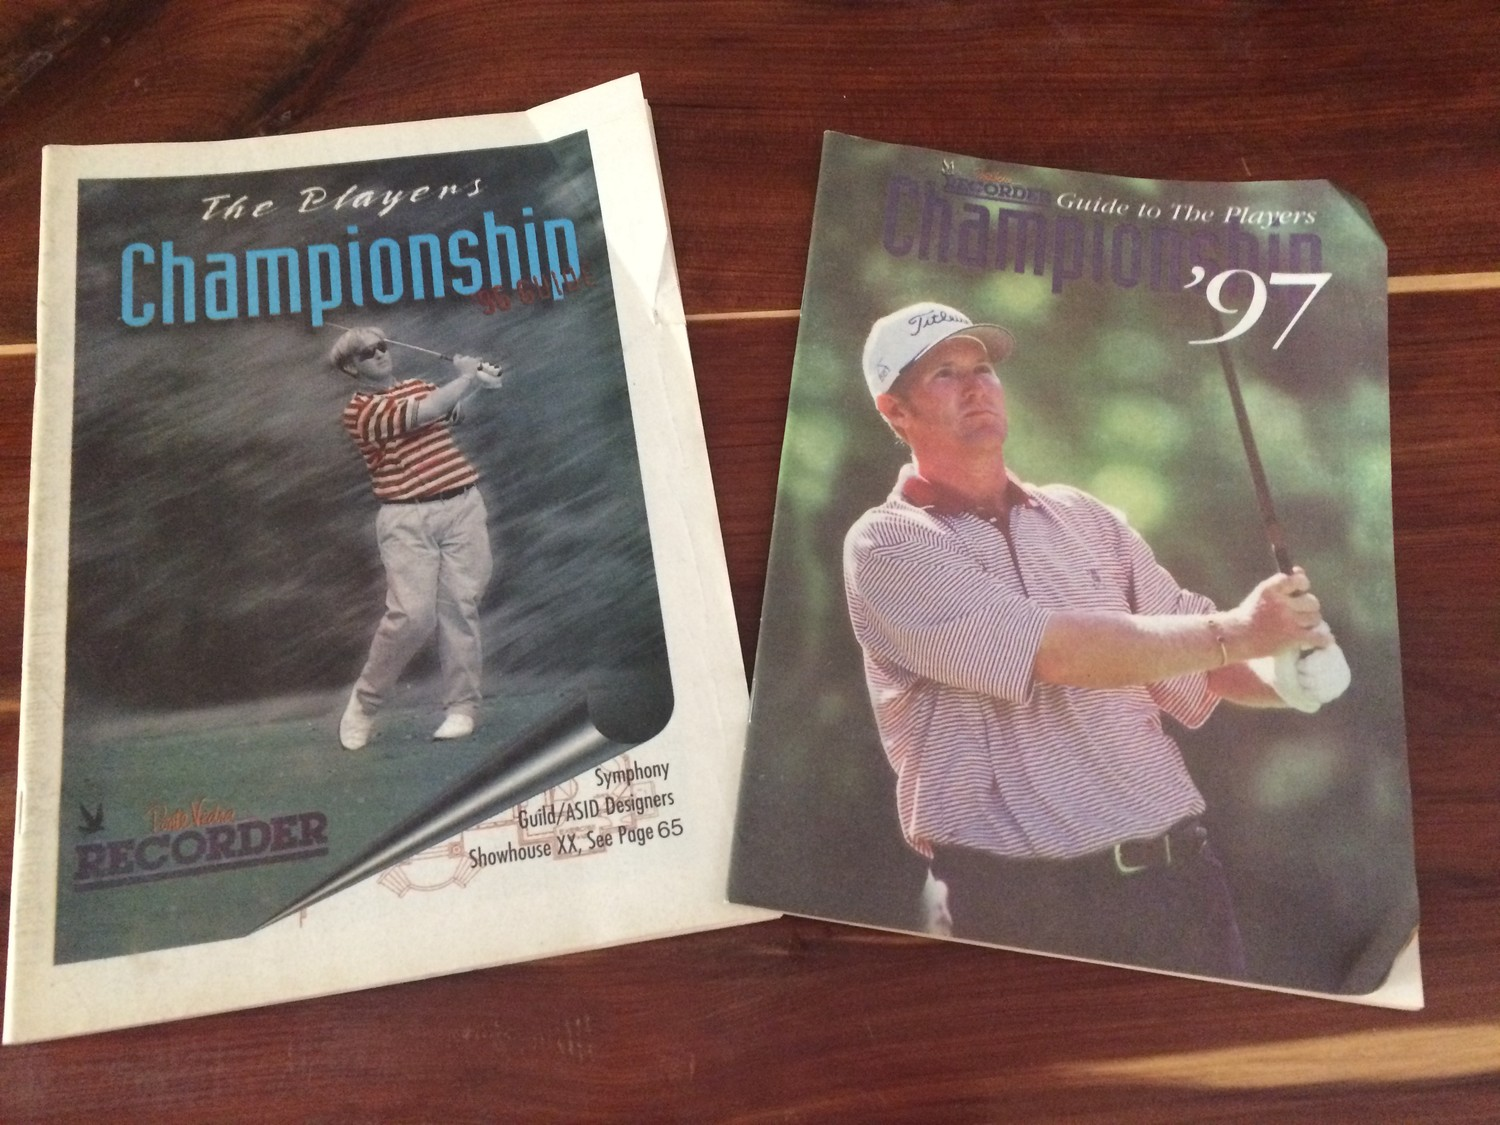 The Recorder's 1996 and 1997 PLAYERS Championship guides.